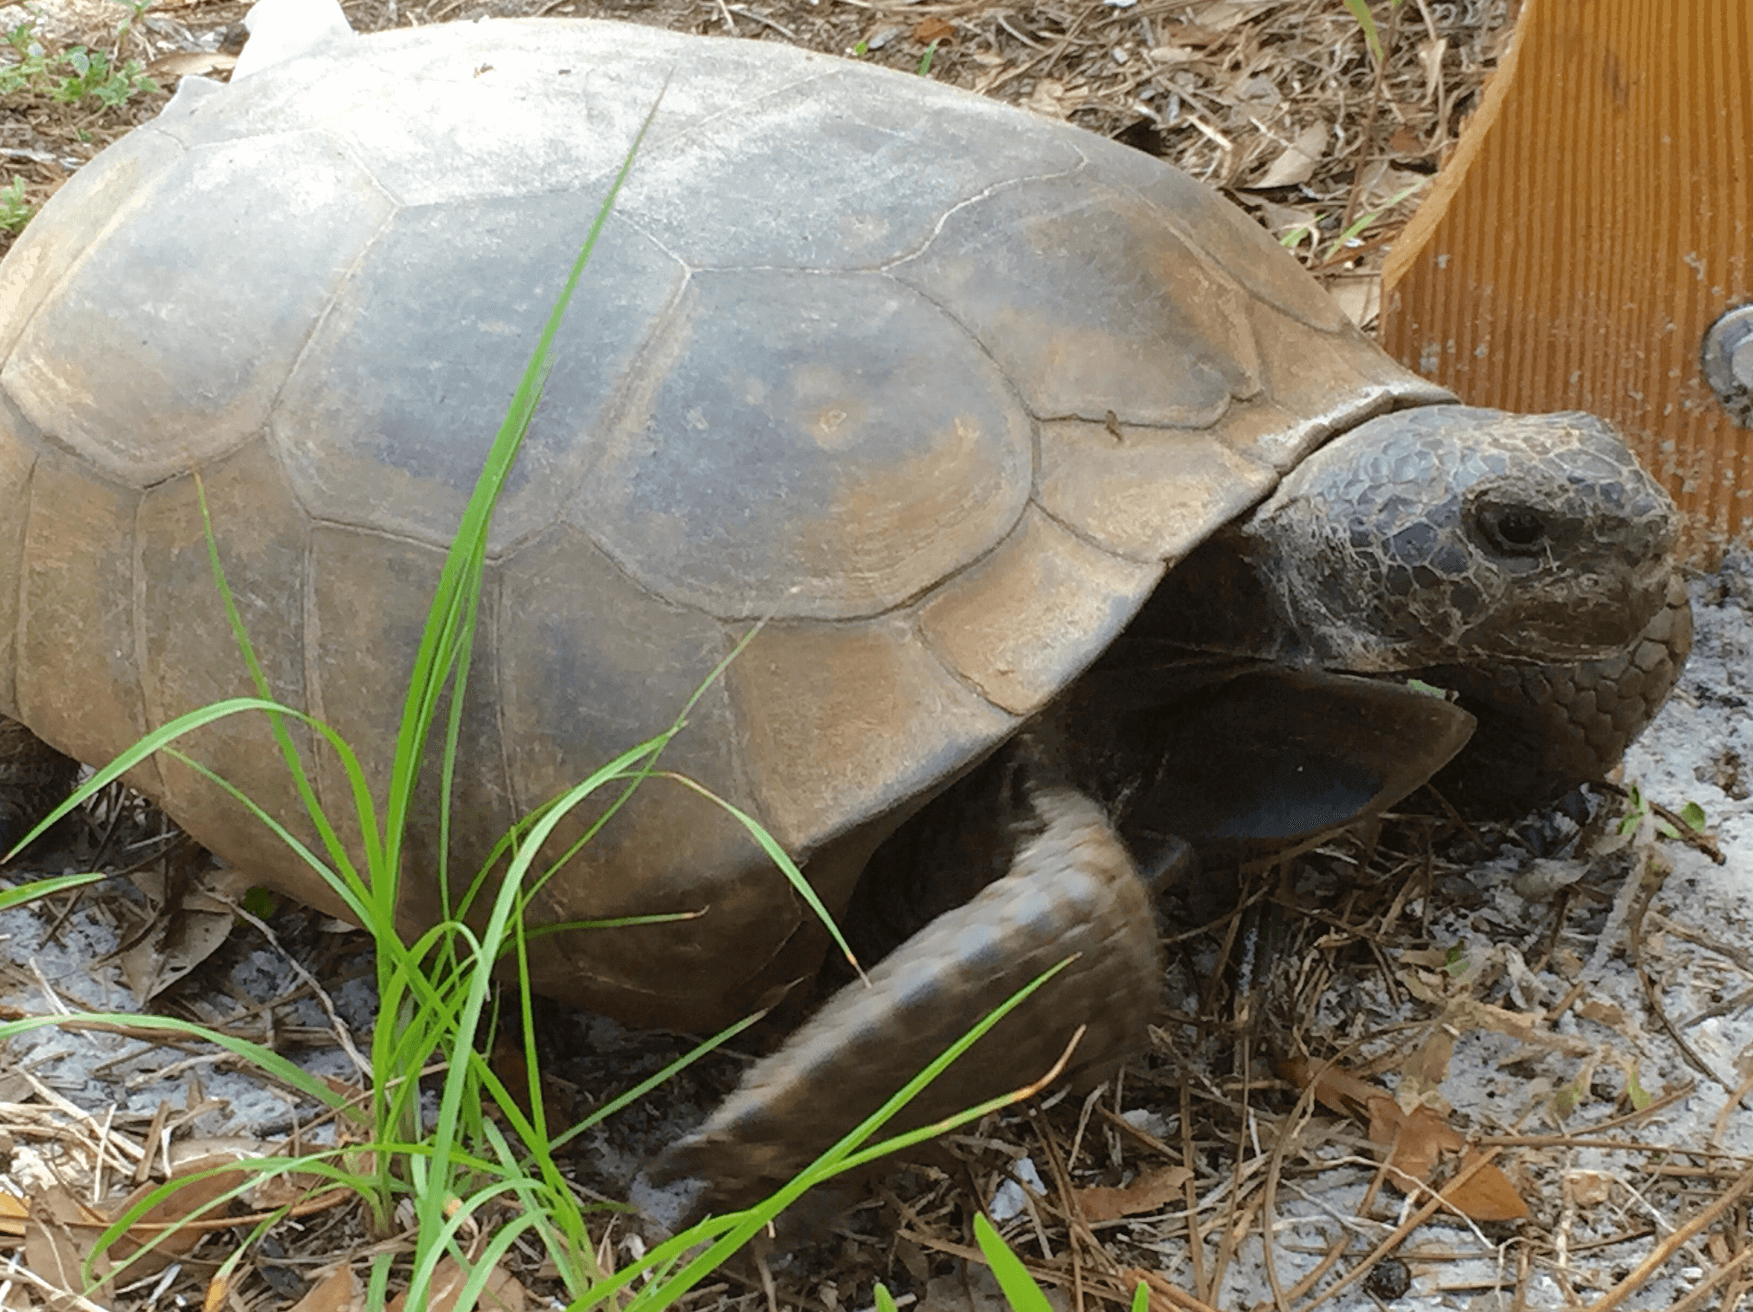 New road might interfere with tortoise habitat on campus